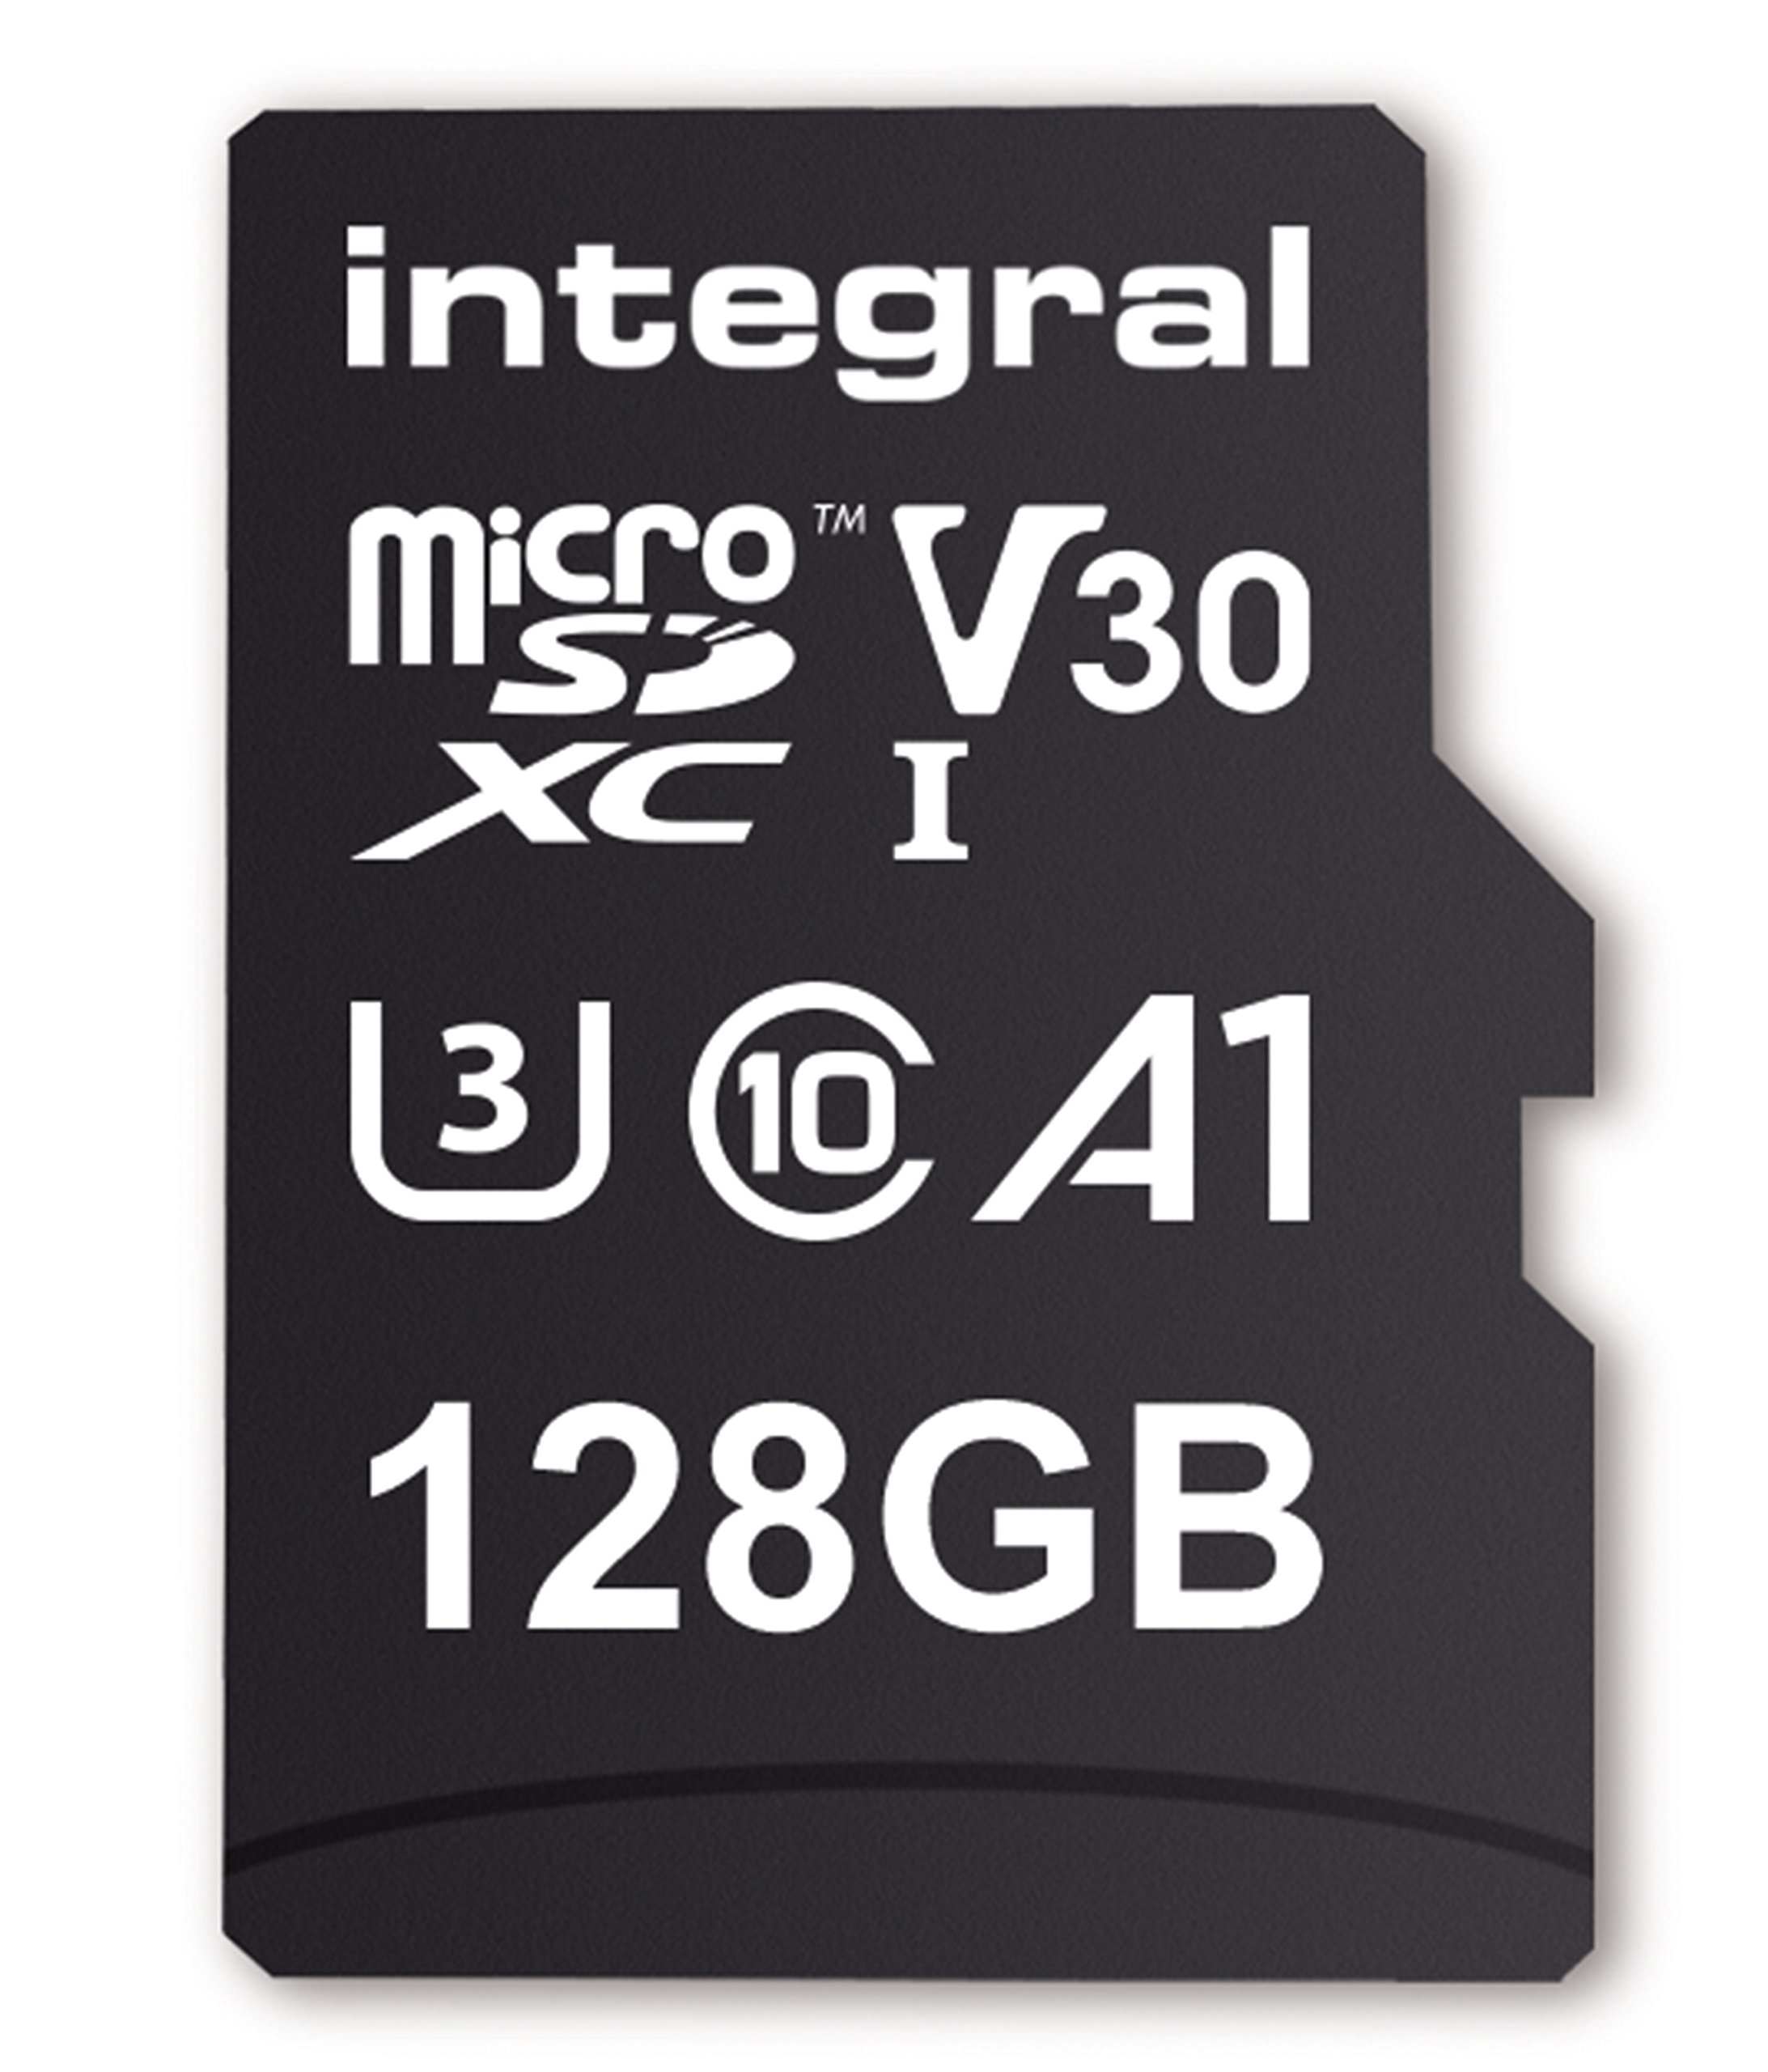 Micro-SD-Card-4K-Ultra-HD-Video-Premium-High-Speed-Memory-Card-Microsdxc